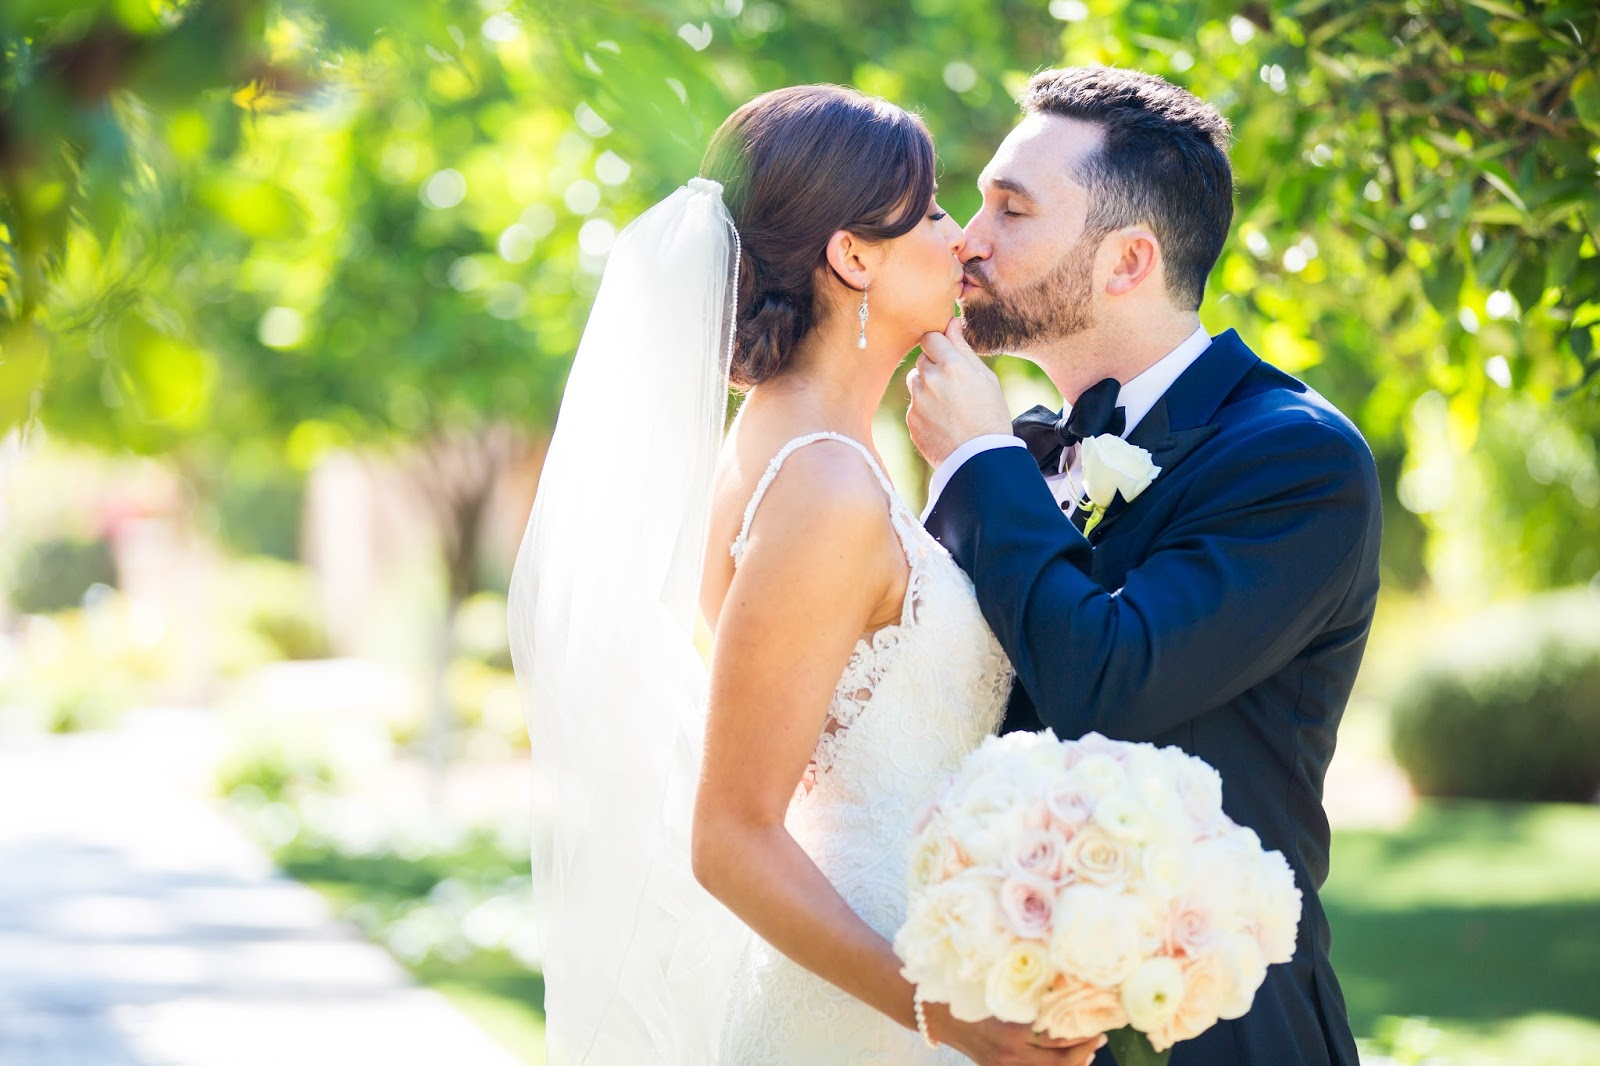 classic romantic bride with white and blush roses wedding bouquet kissing groom in navy suit at Omni Montelucia